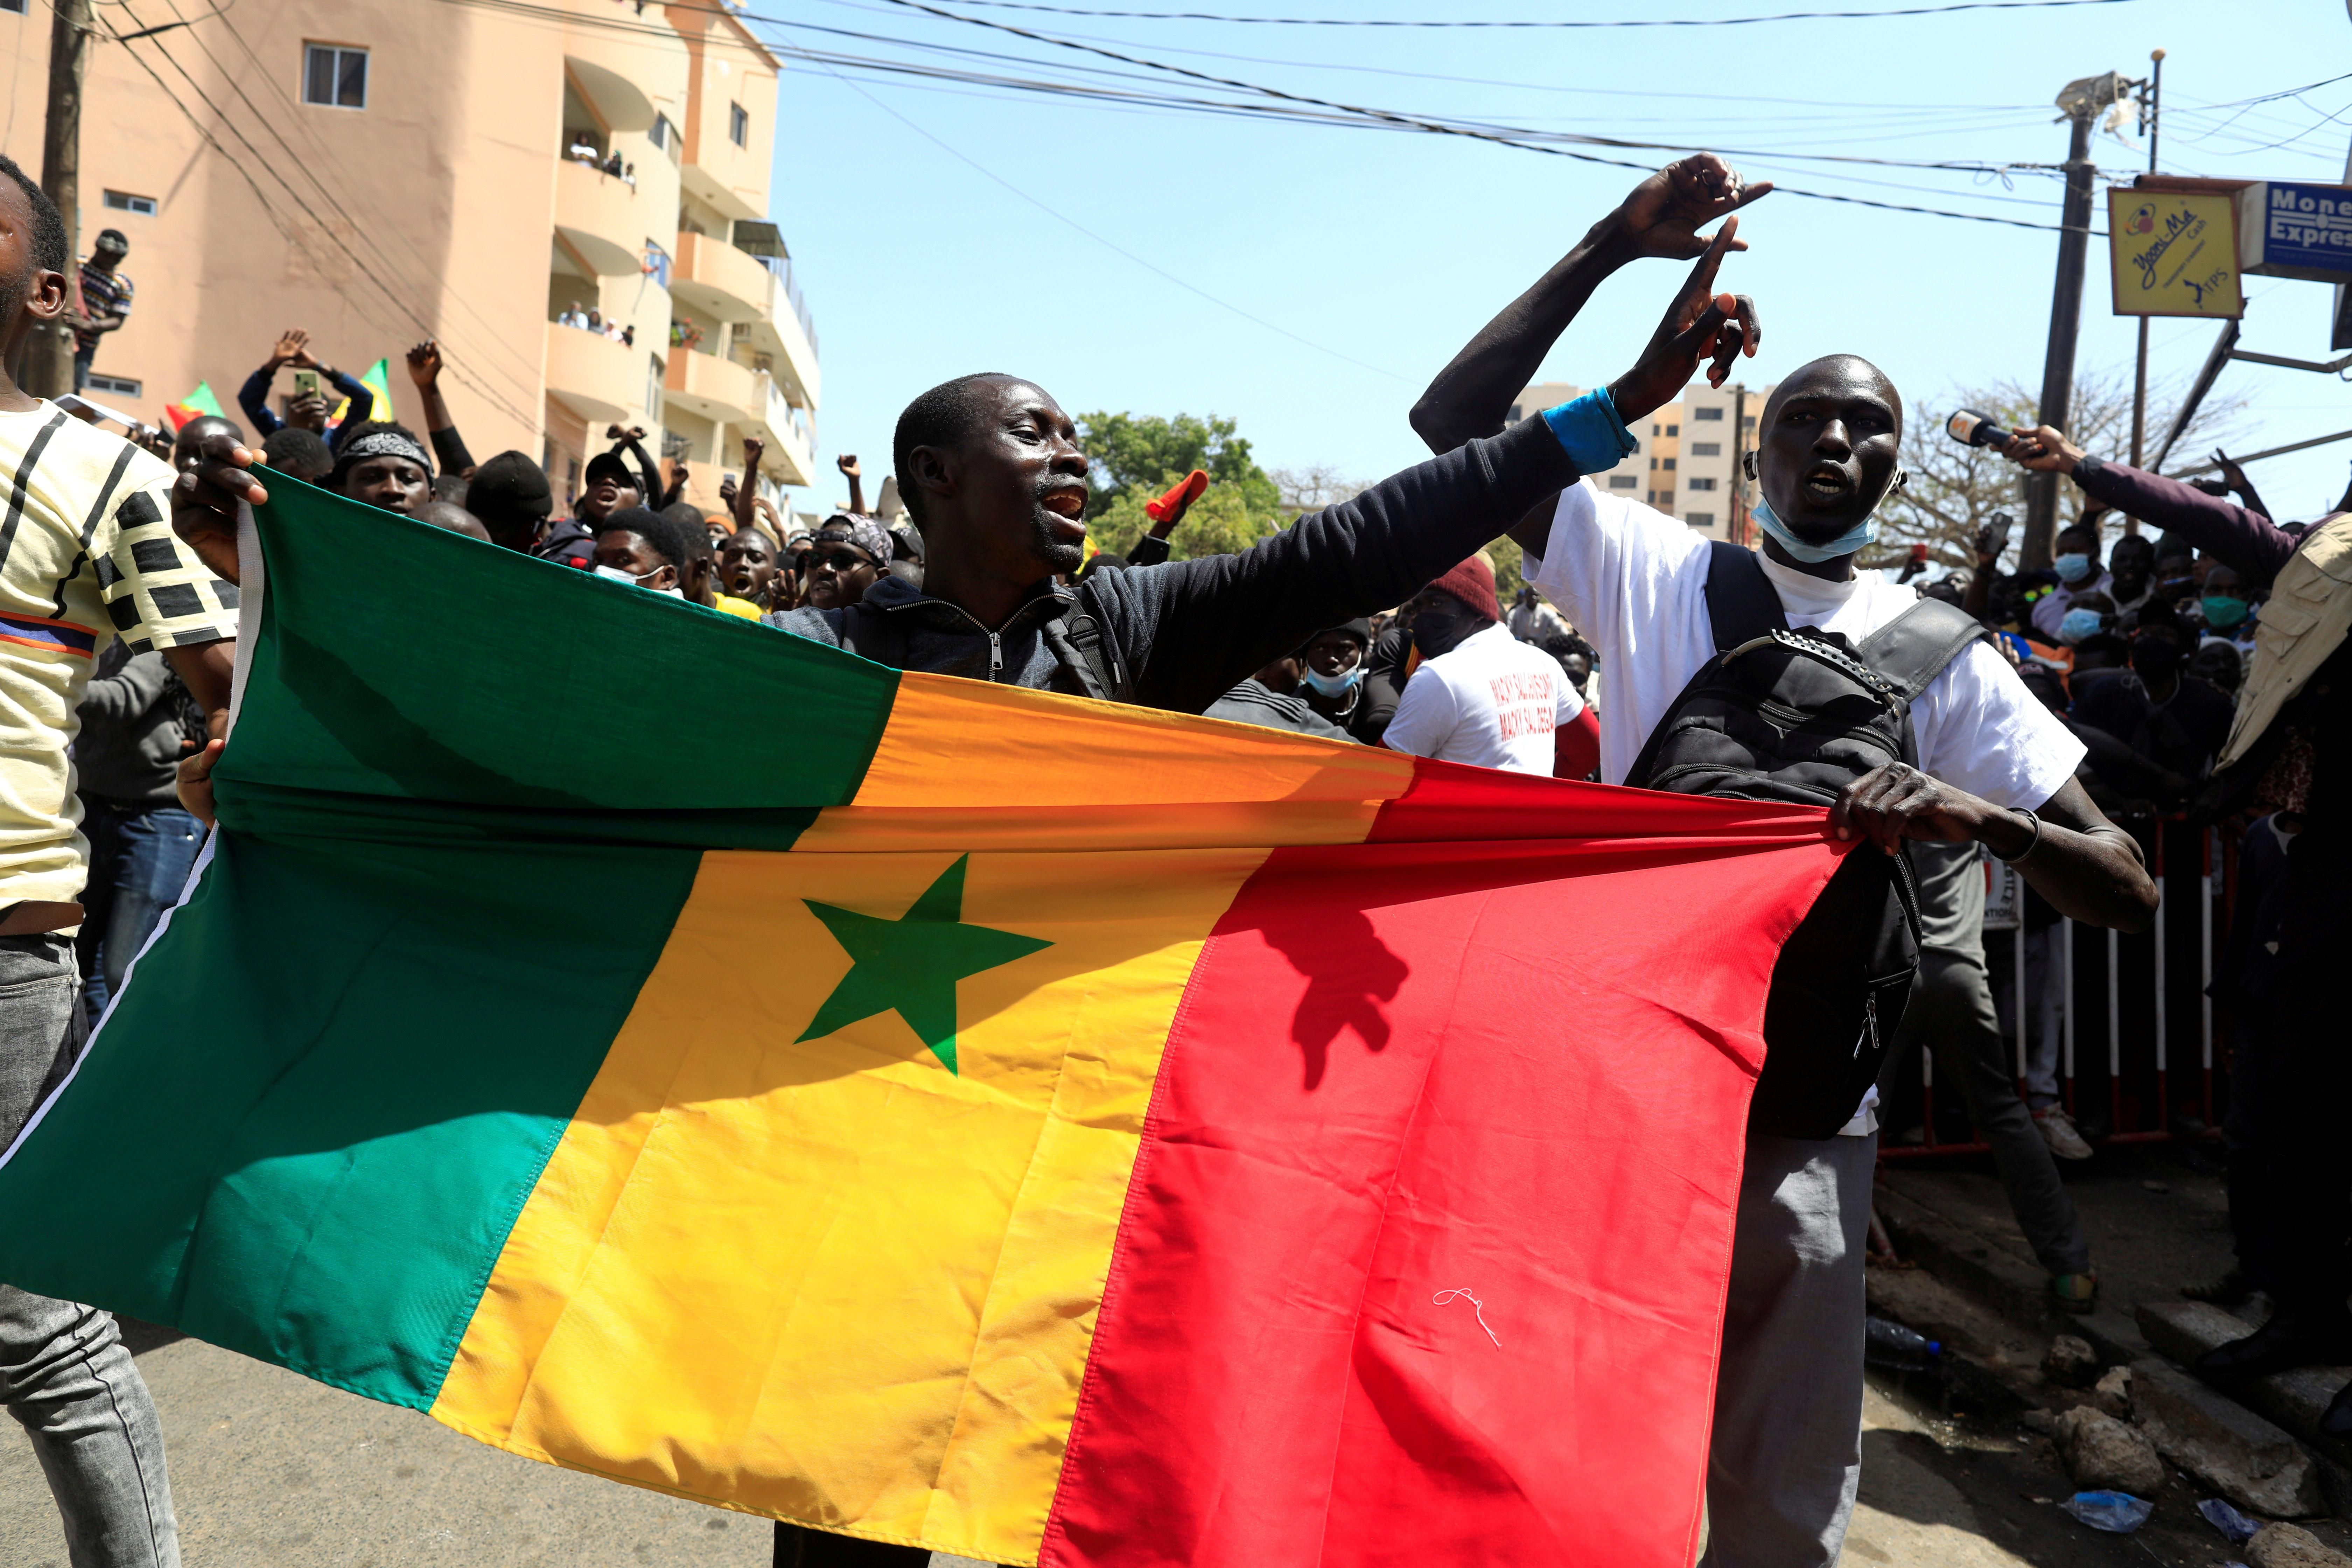 Supporters of opposition leader Ousmane Sonko, who was indicted and released on bail under judicial supervision, attend a demonstration in front of the court in Dakar, Senegal March 8, 2021